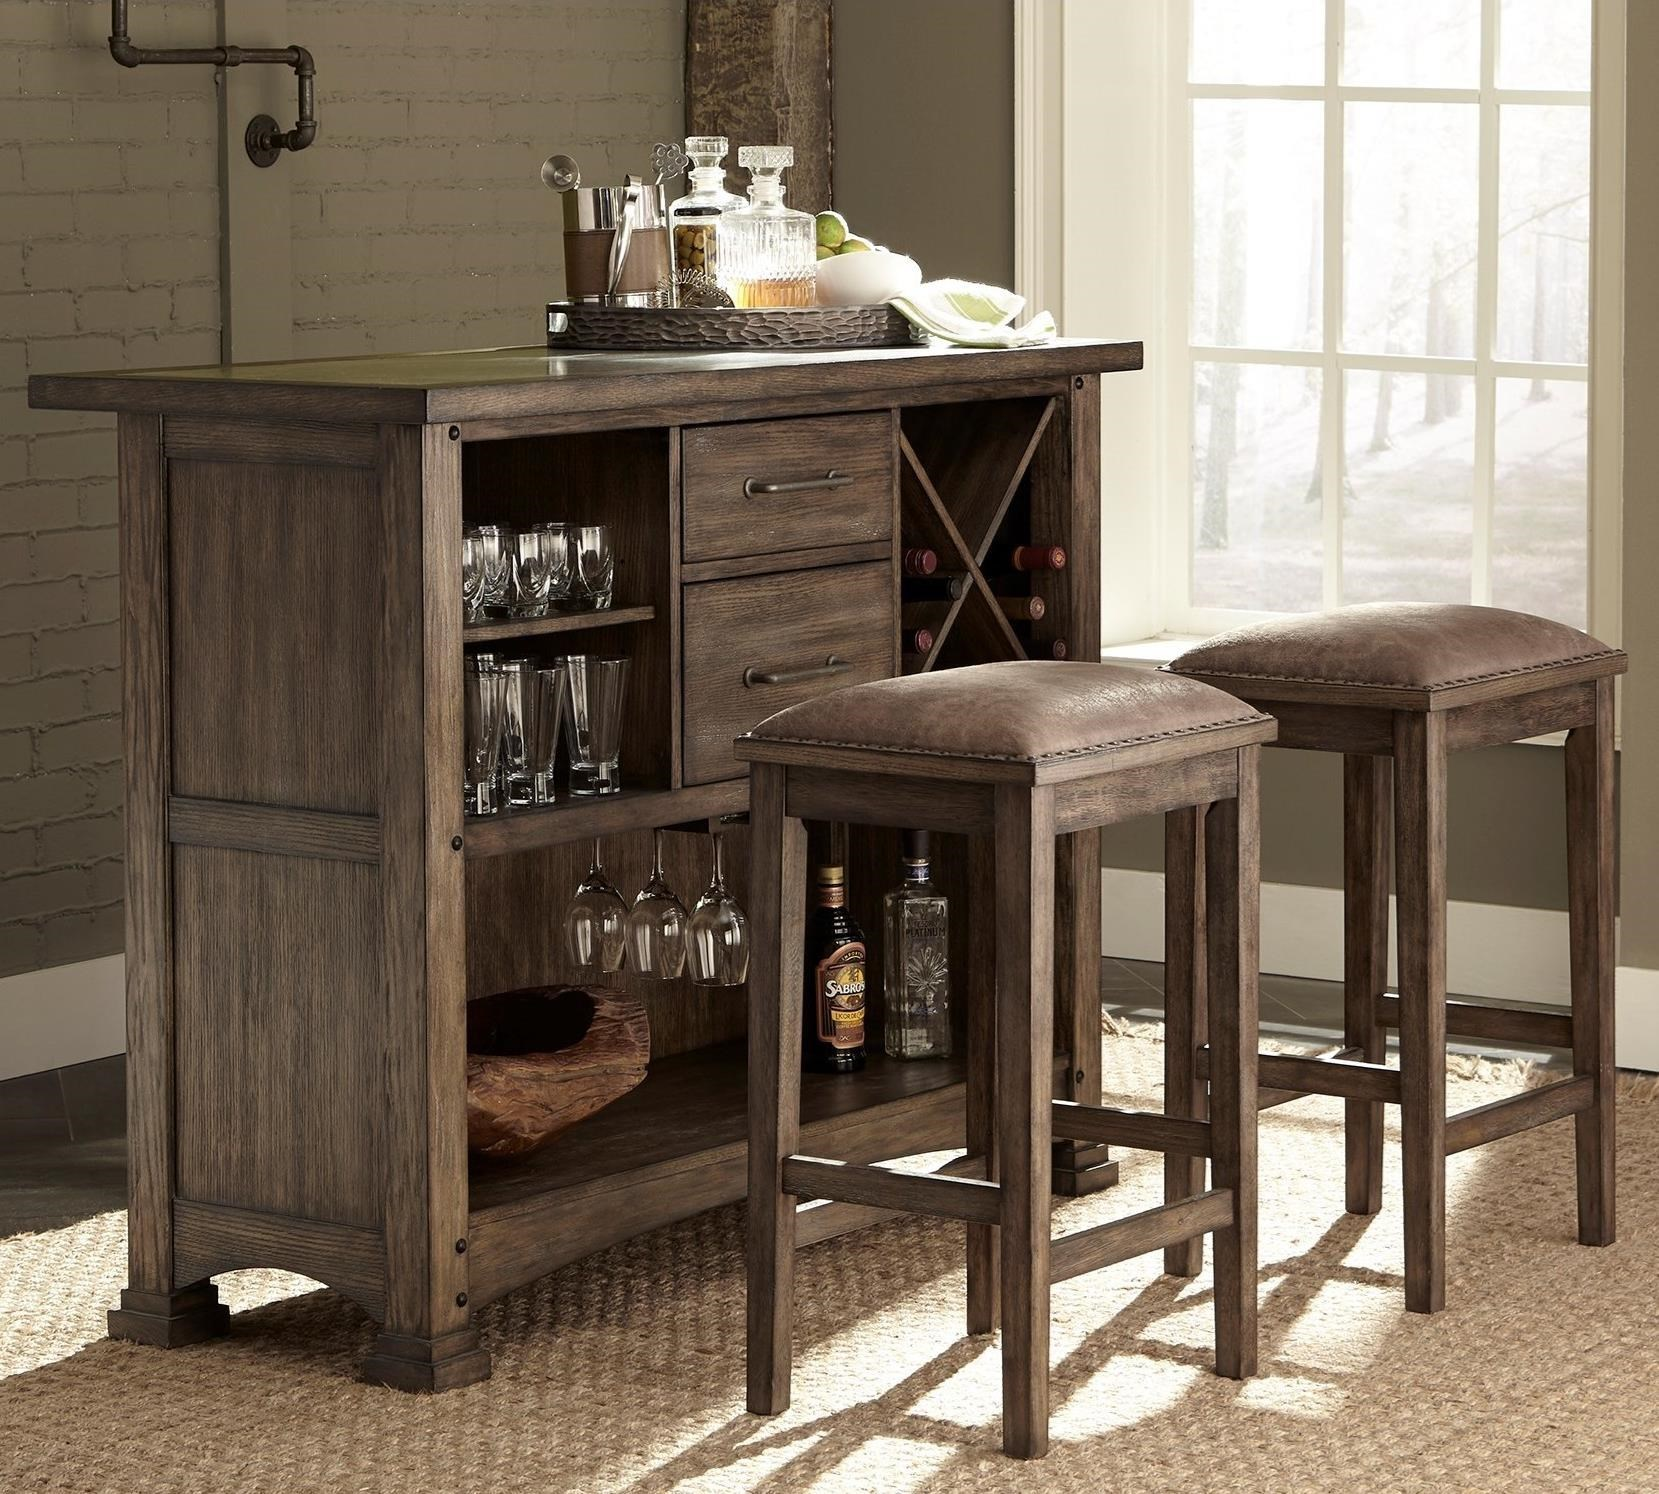 Delicieux Liberty Furniture Stone Brook 3 Piece Bar And Stool Set